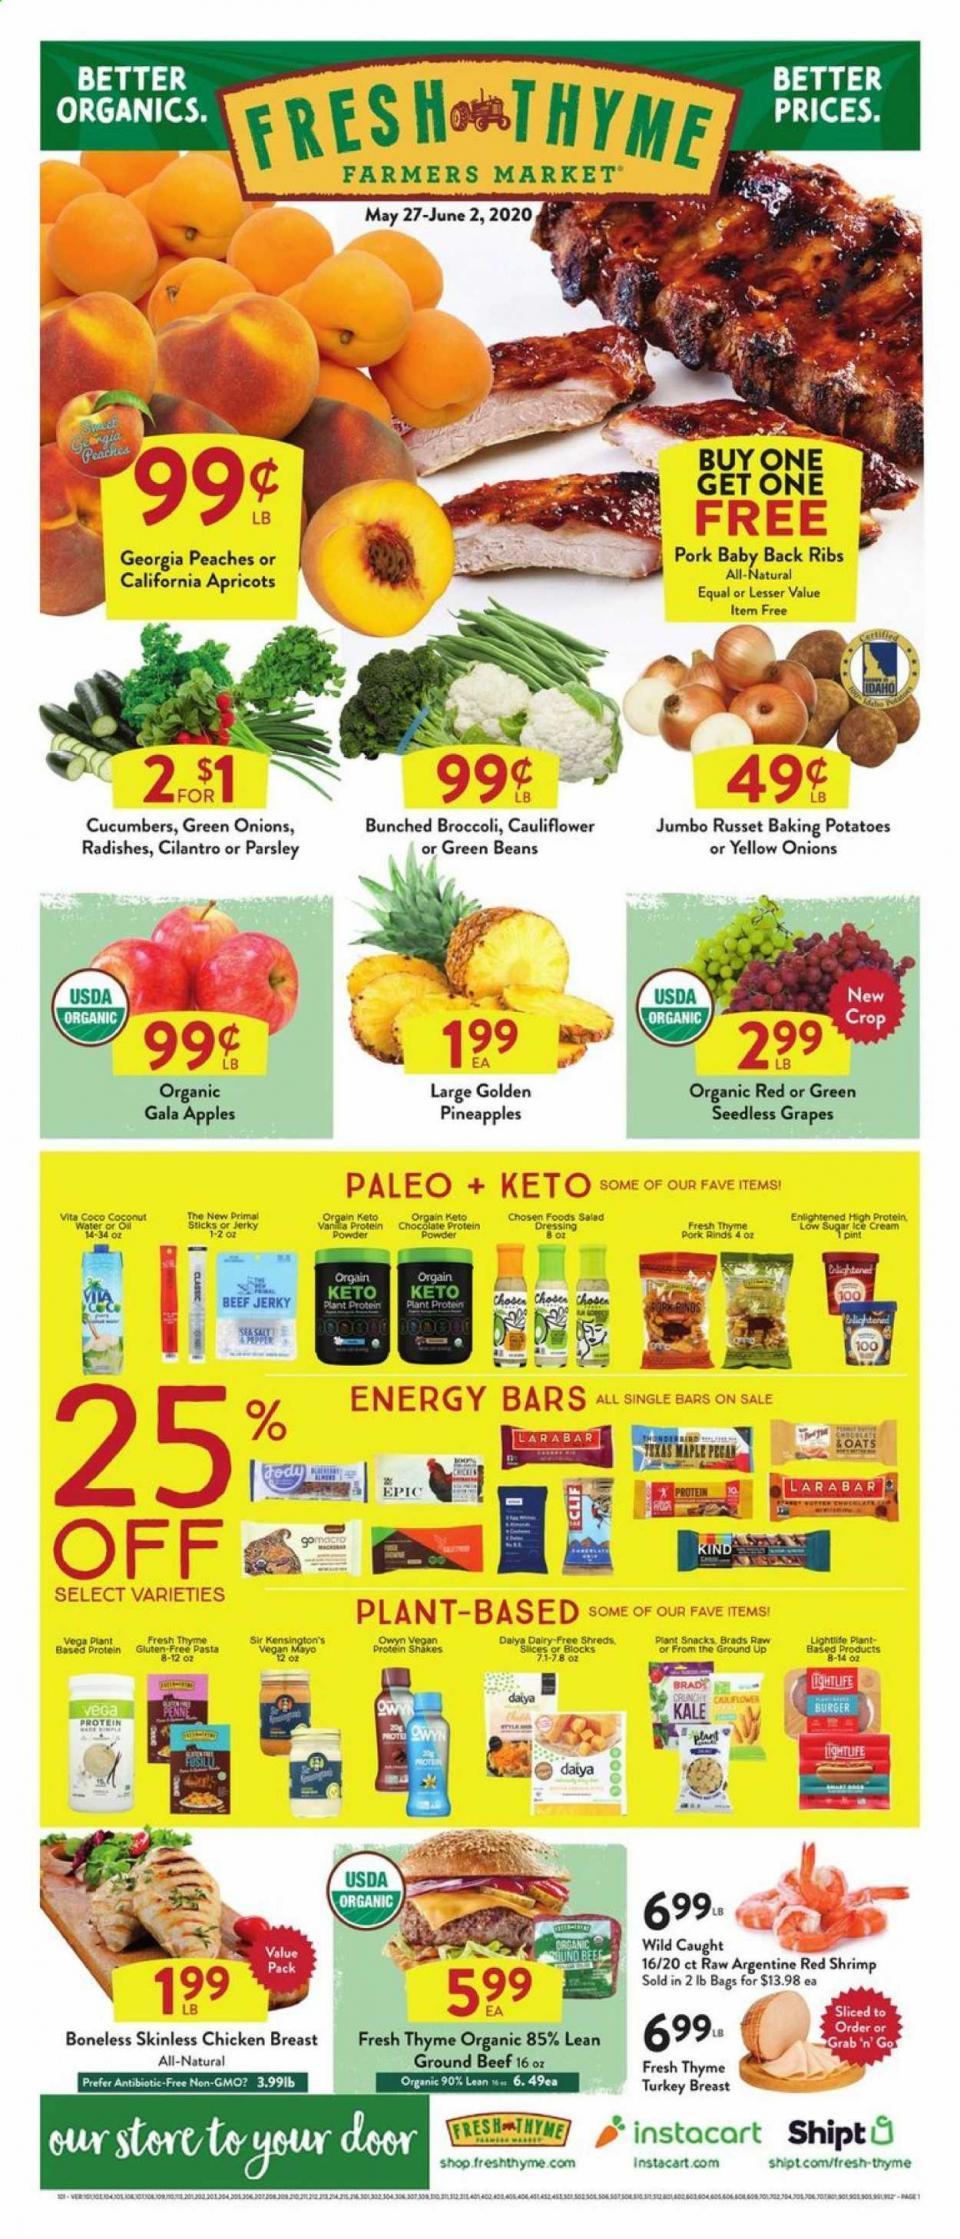 Fresh Thyme Fresh Produce Sale valid from May 27 – Jun 2, 2020